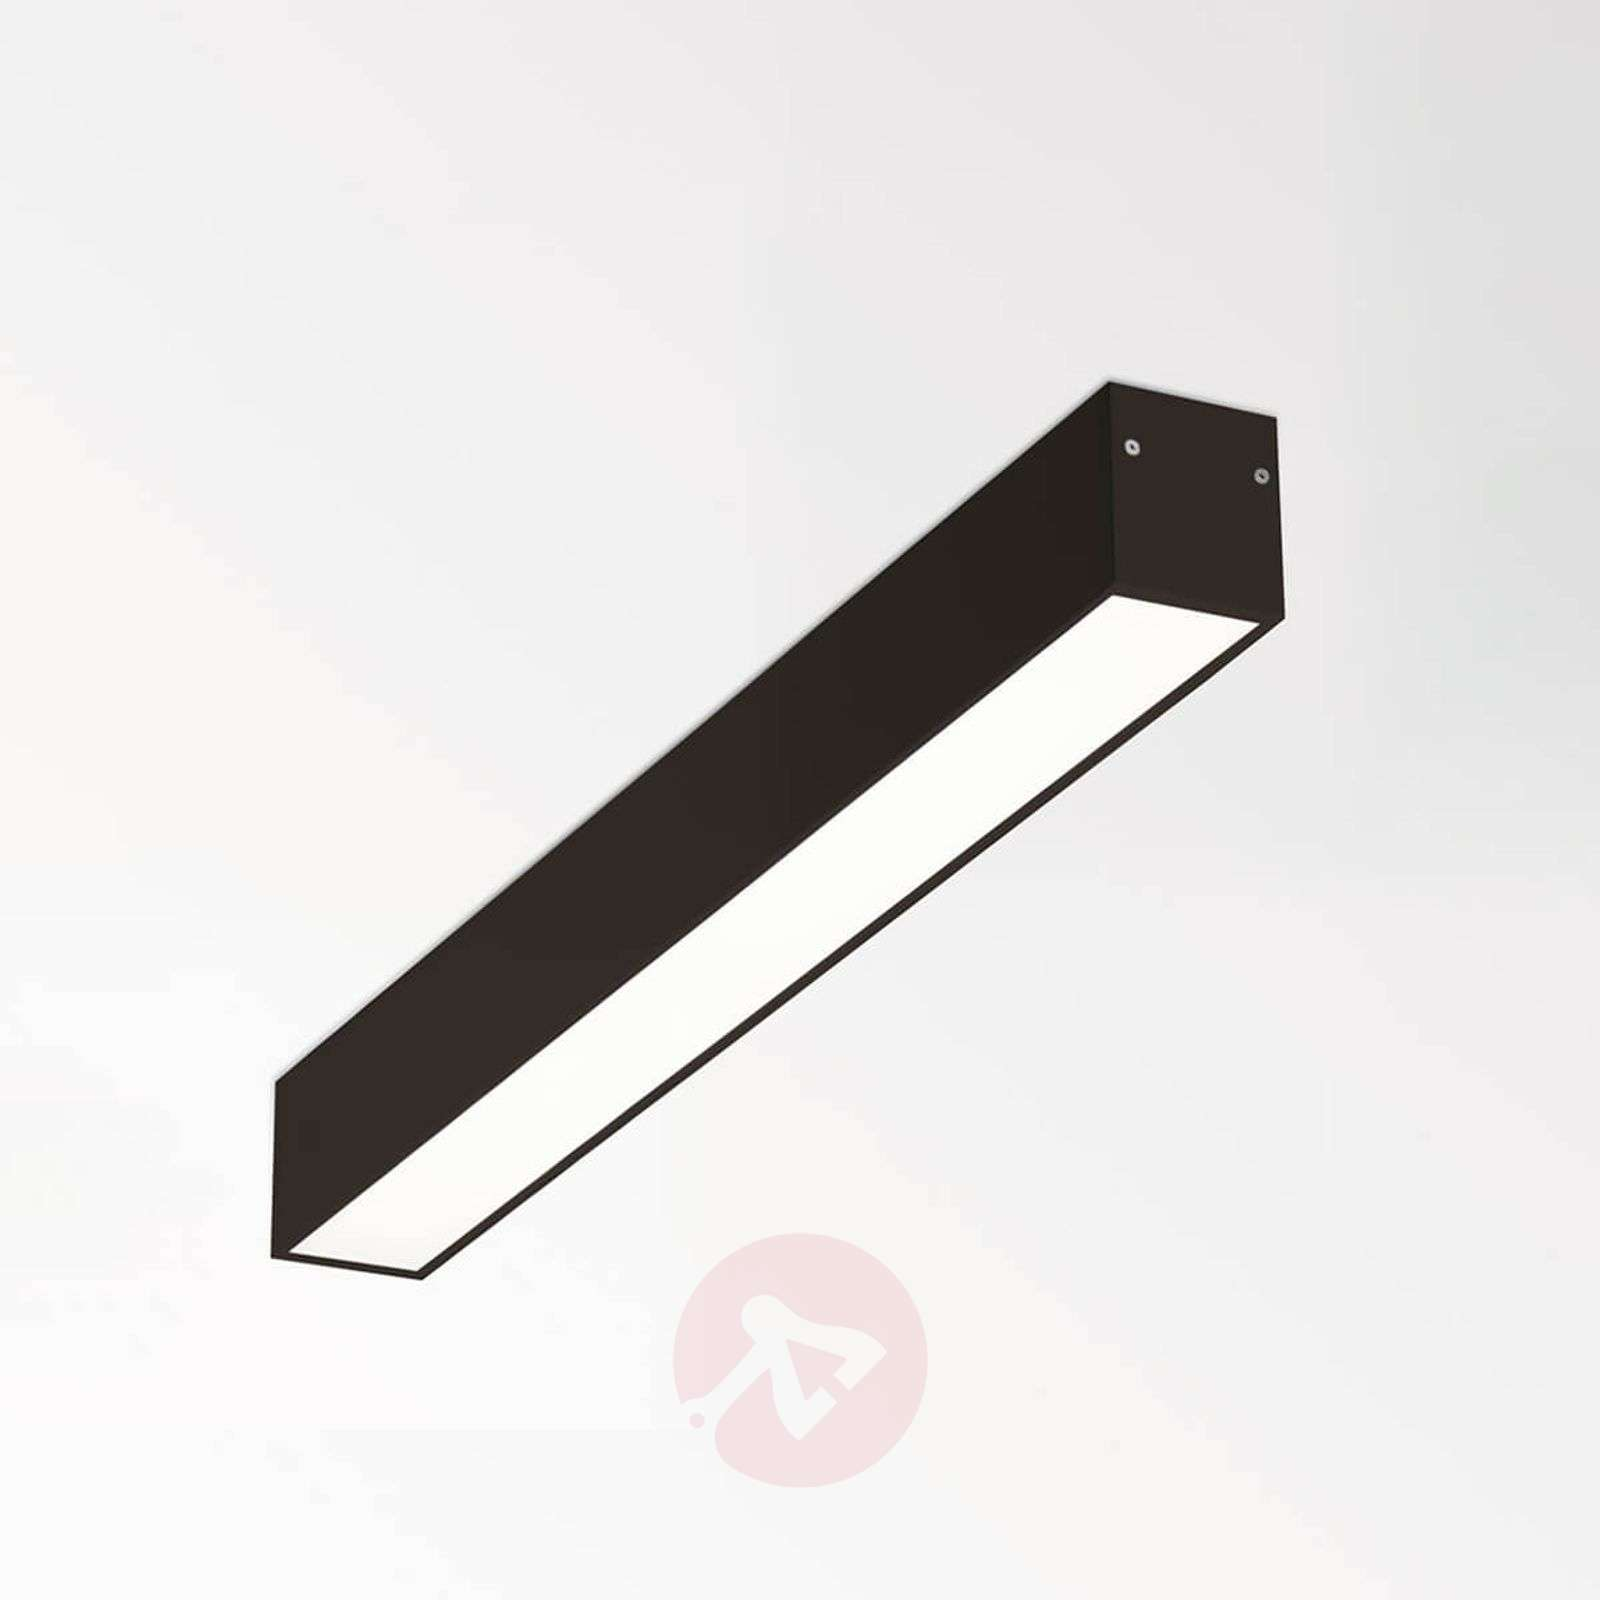 For outdoor use LED ceiling lamp B-Liner 58 cm-2520141-01